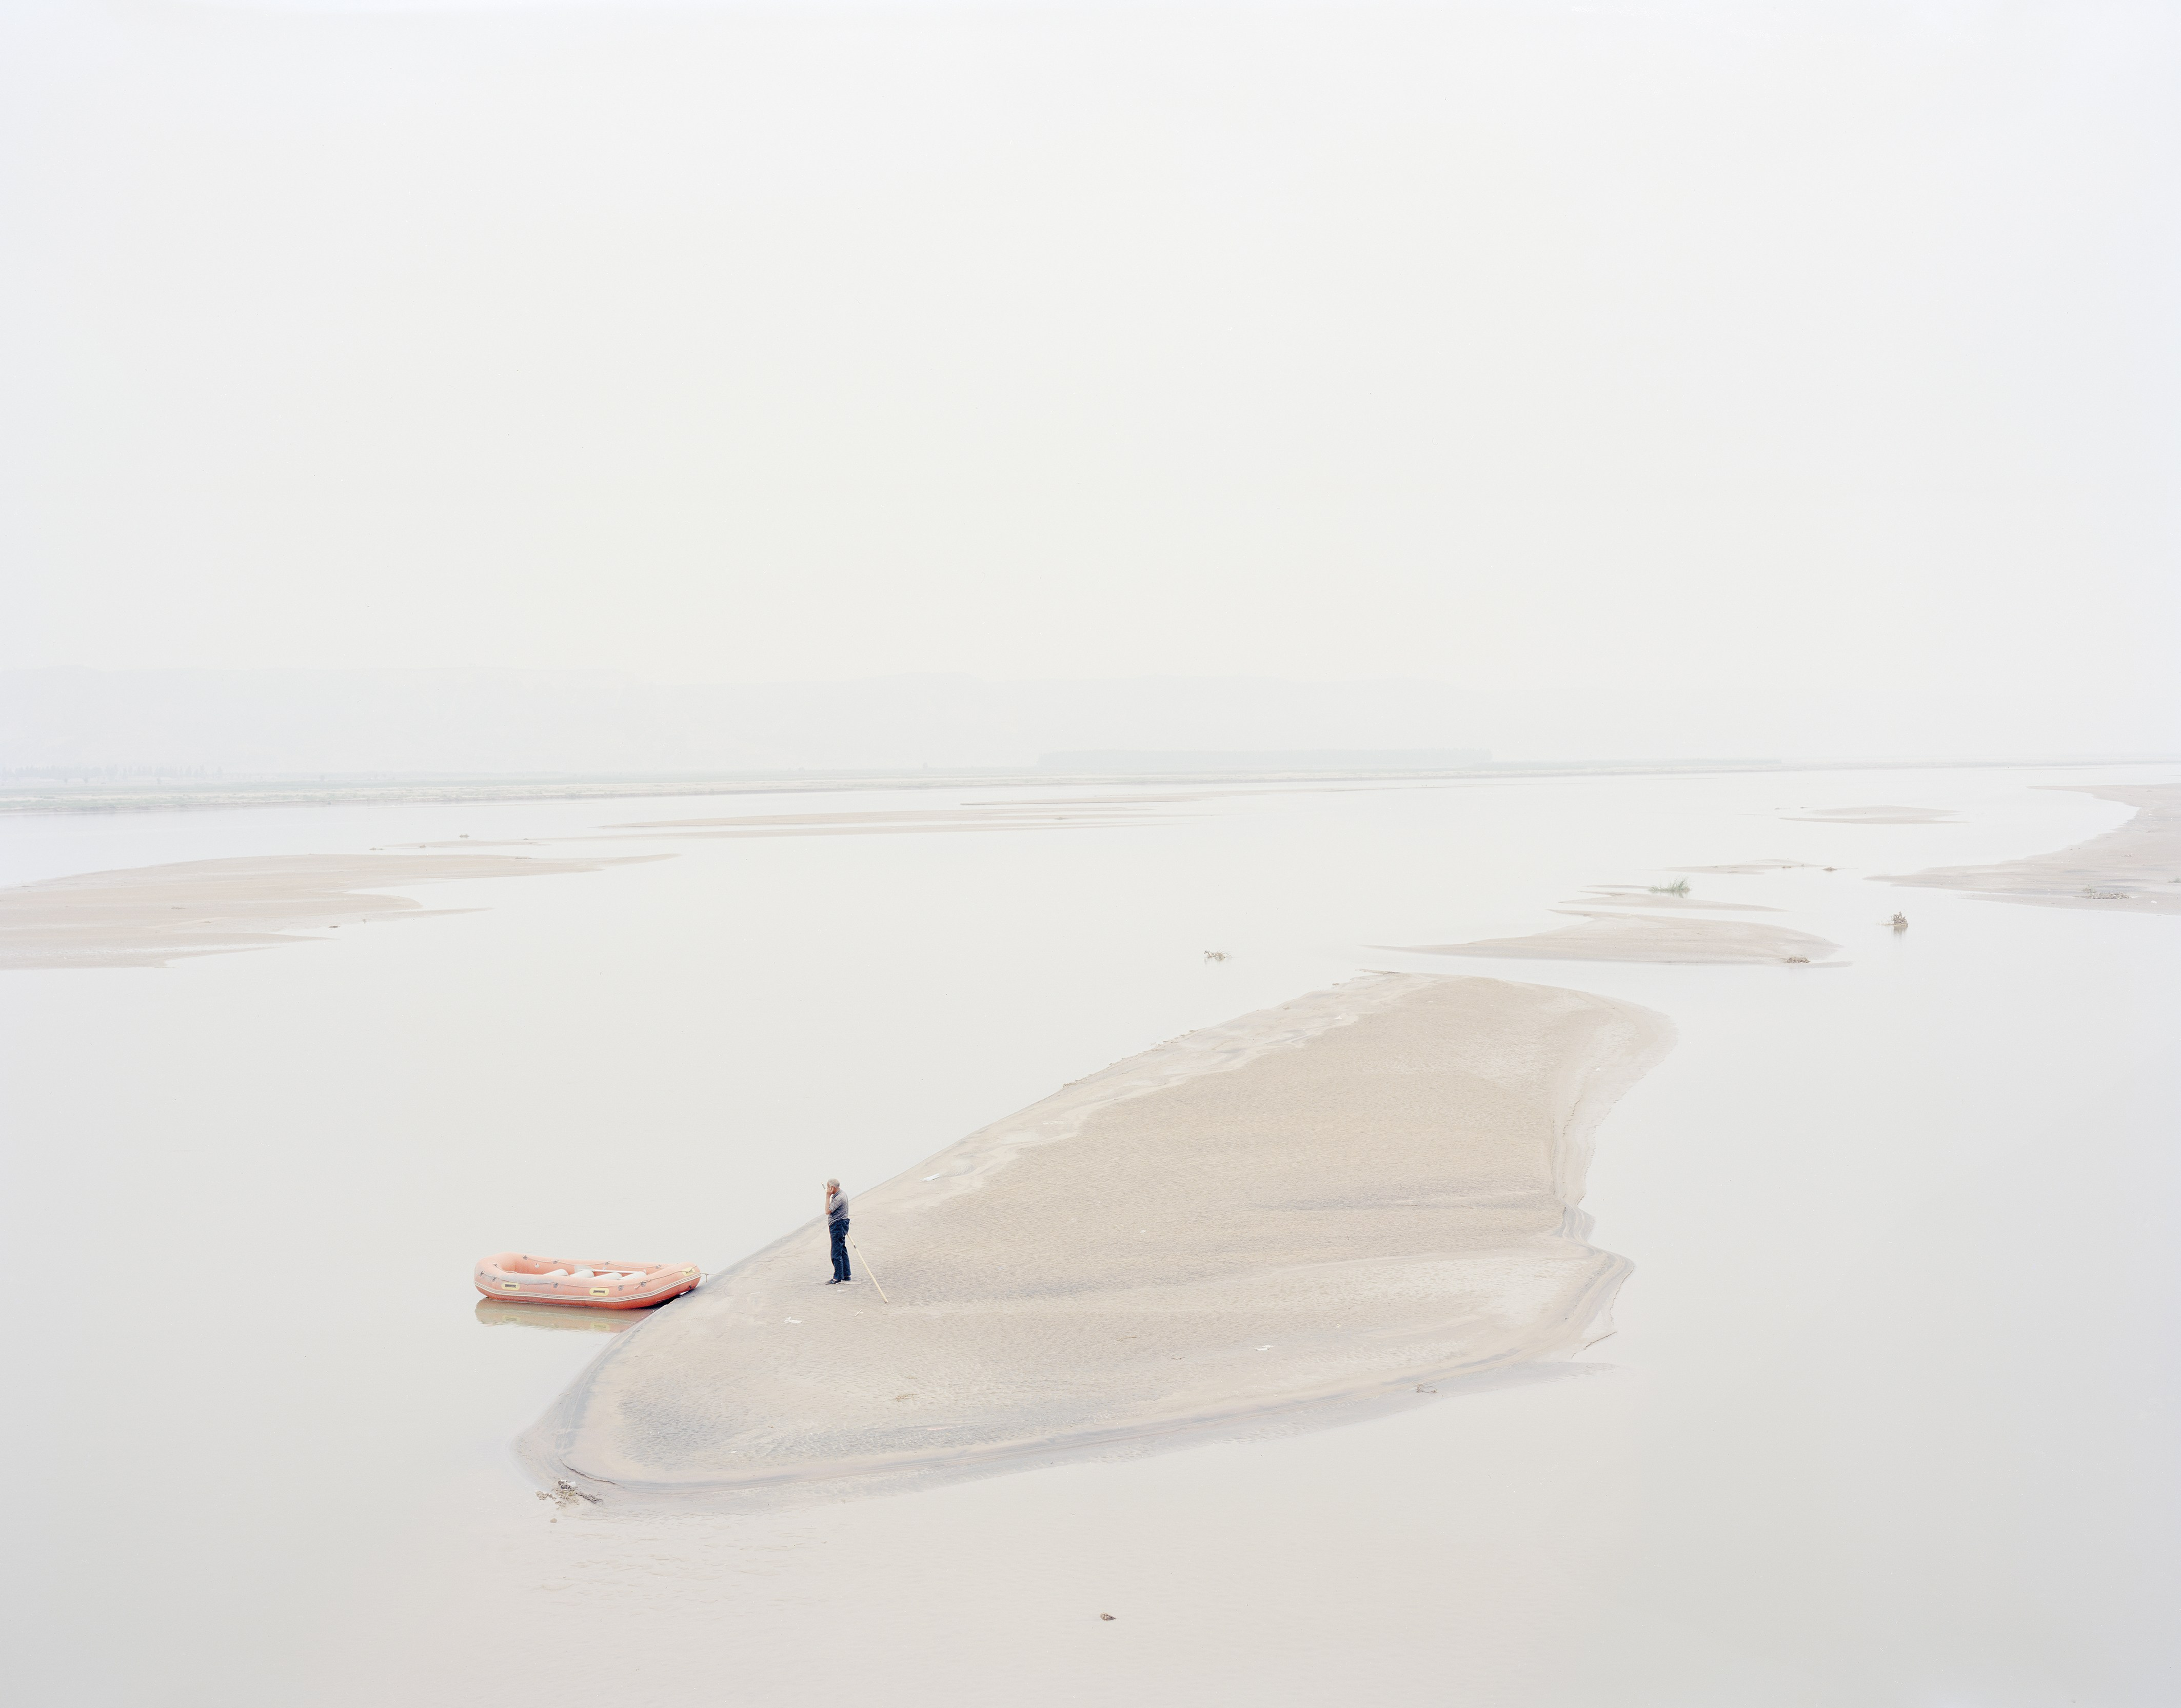 Zhang Kechun – A Man Standing on an Island in the Middle of the River, Shaanxi, China, 2012